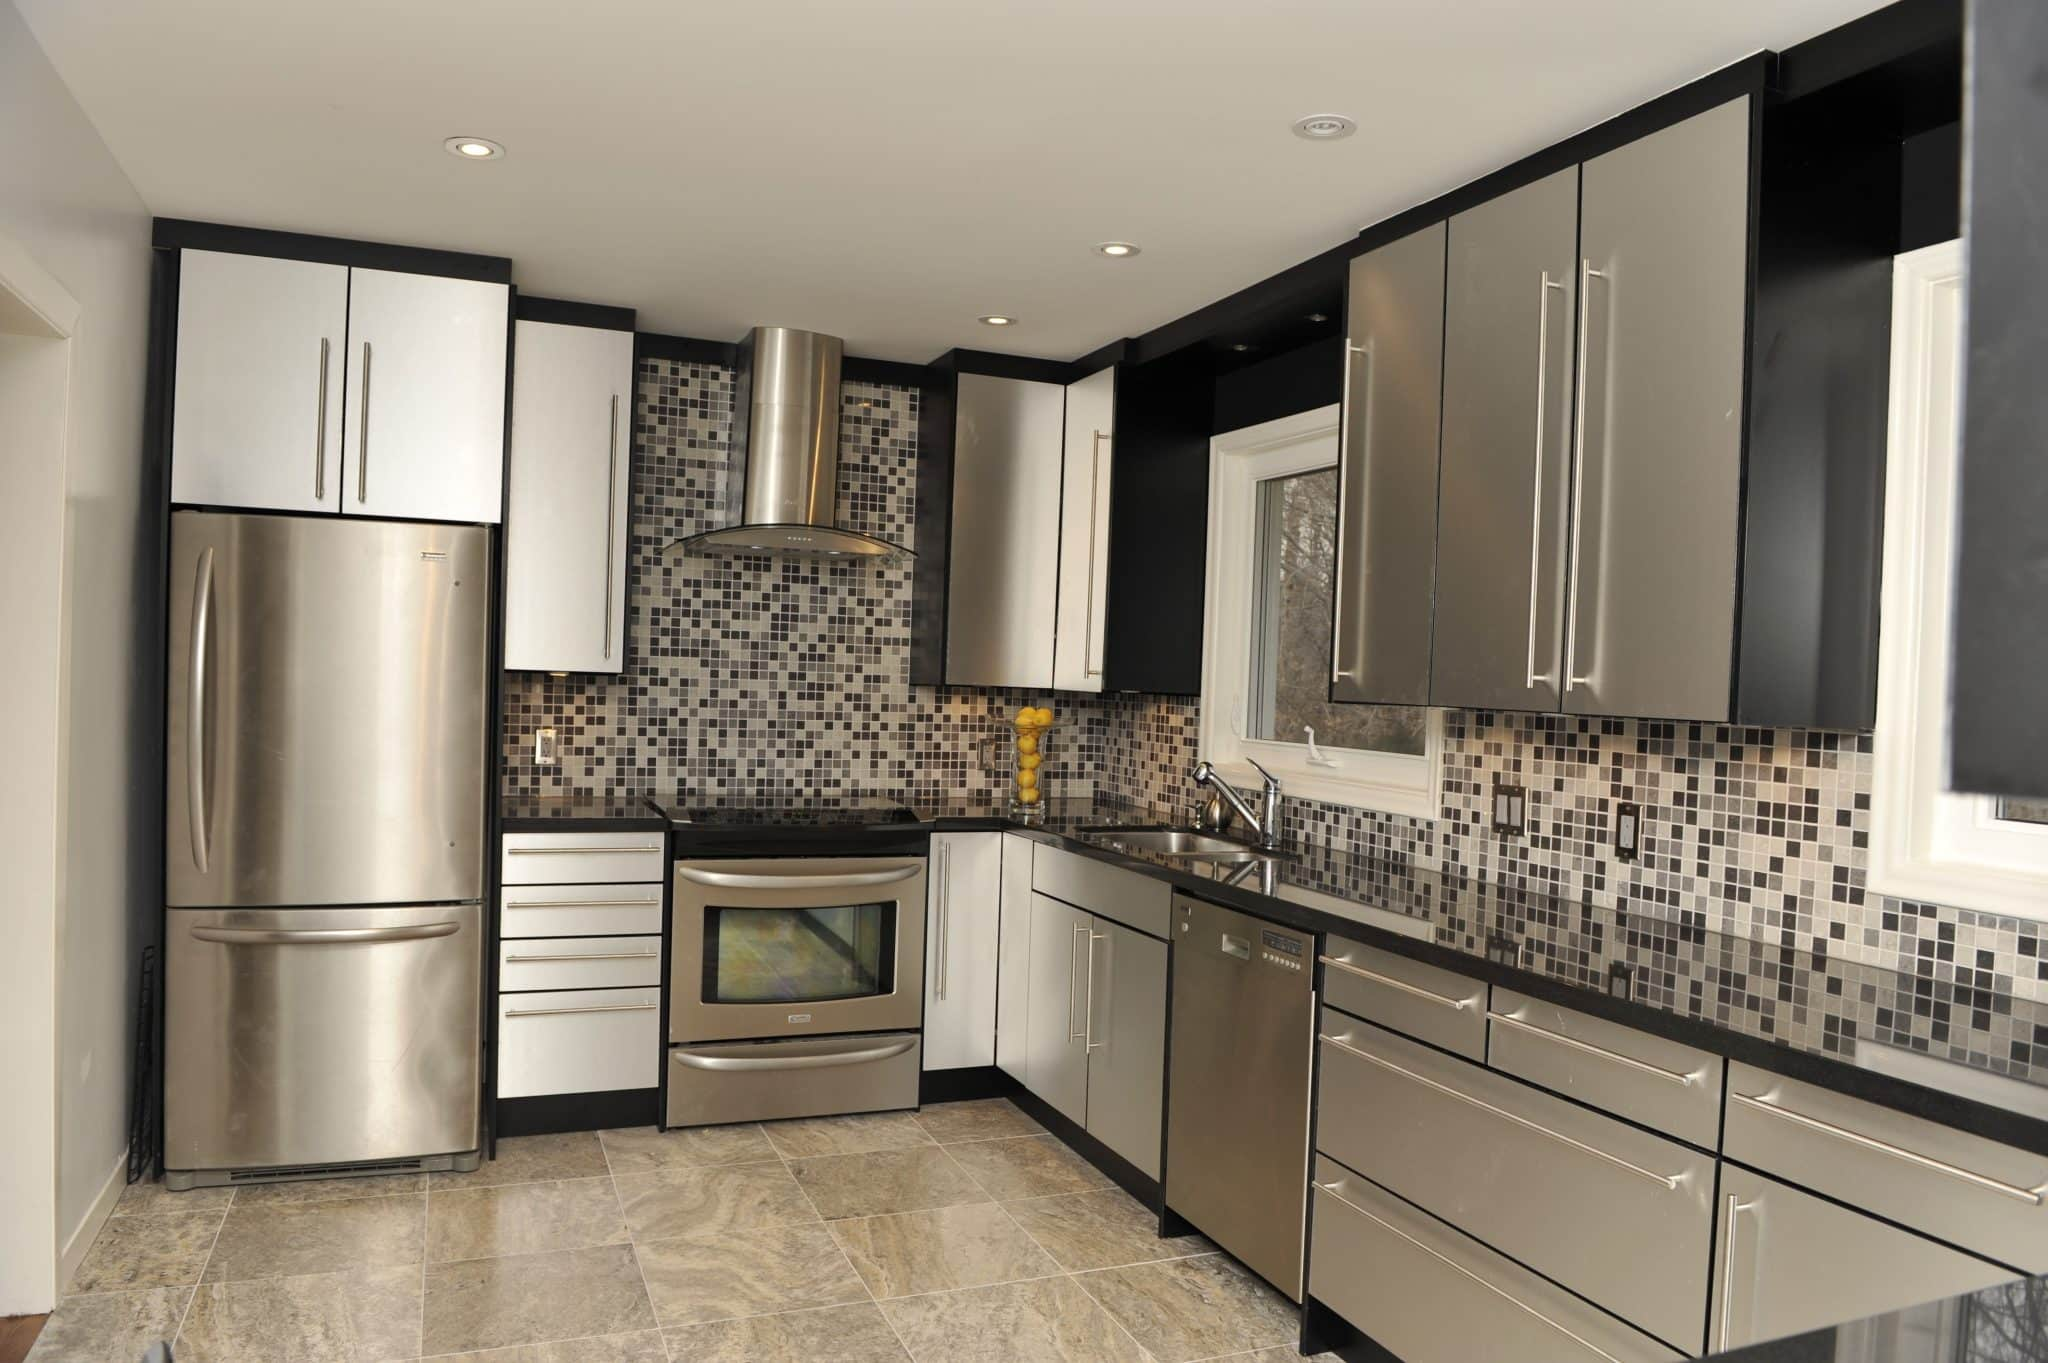 Euro Stainless__ac6__Bayberry Cres.  North York.